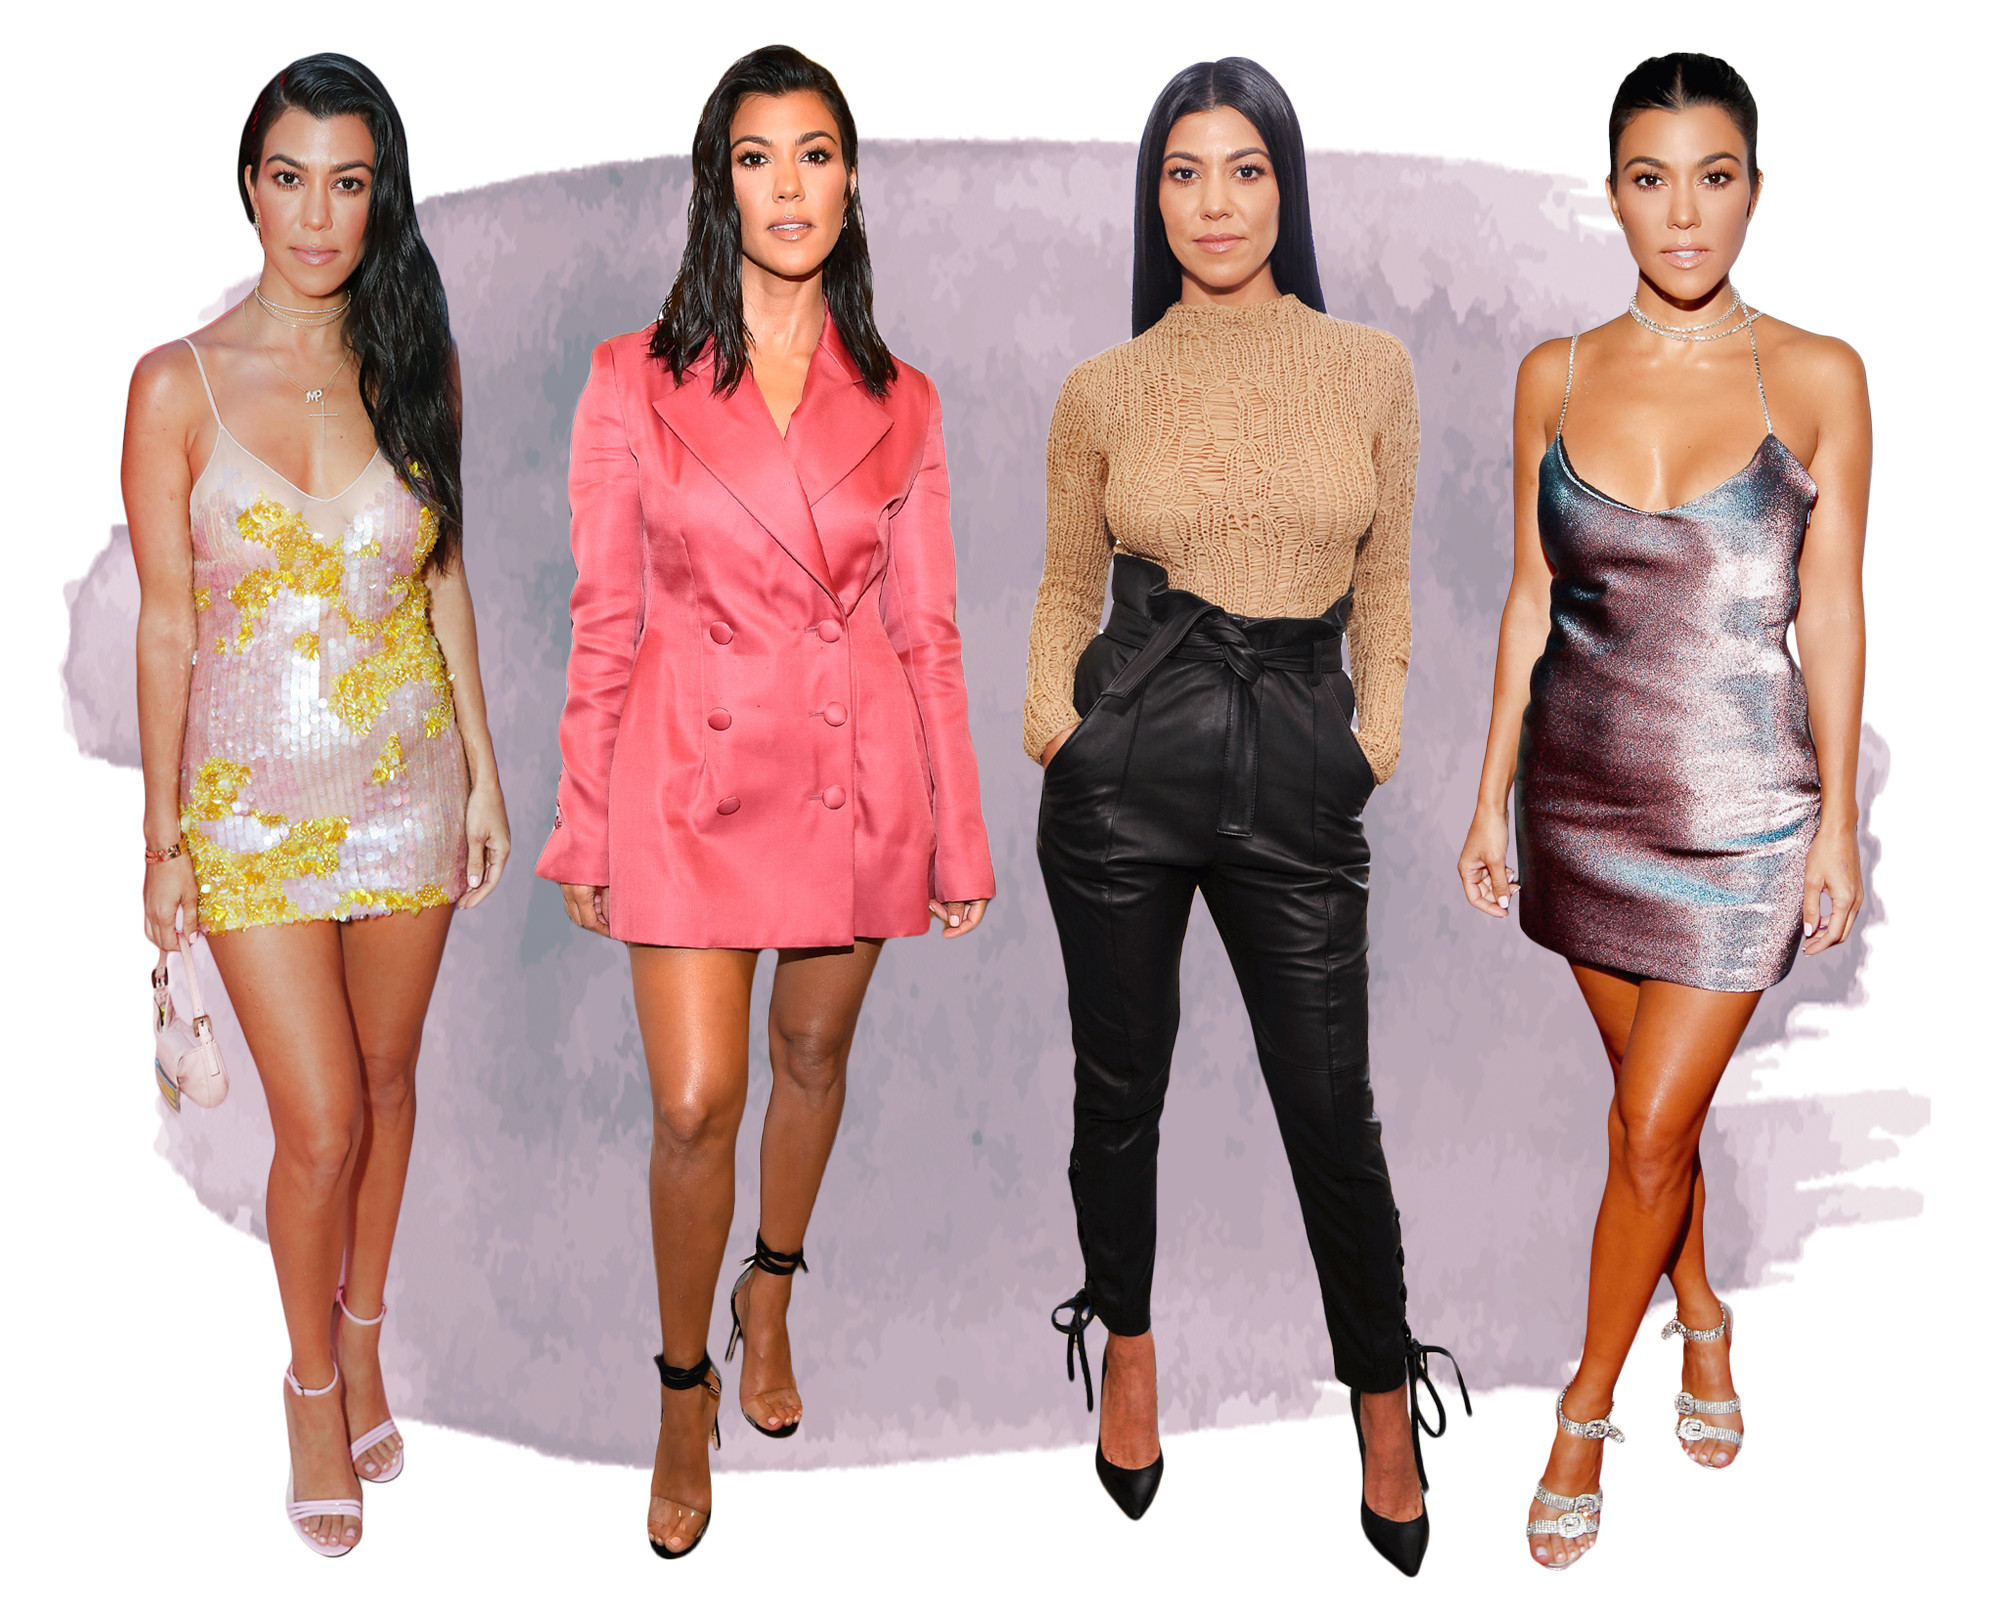 cefeae07370 Kourtney Kardashian Is on a Mission to Be the Sexiest Mom Alive